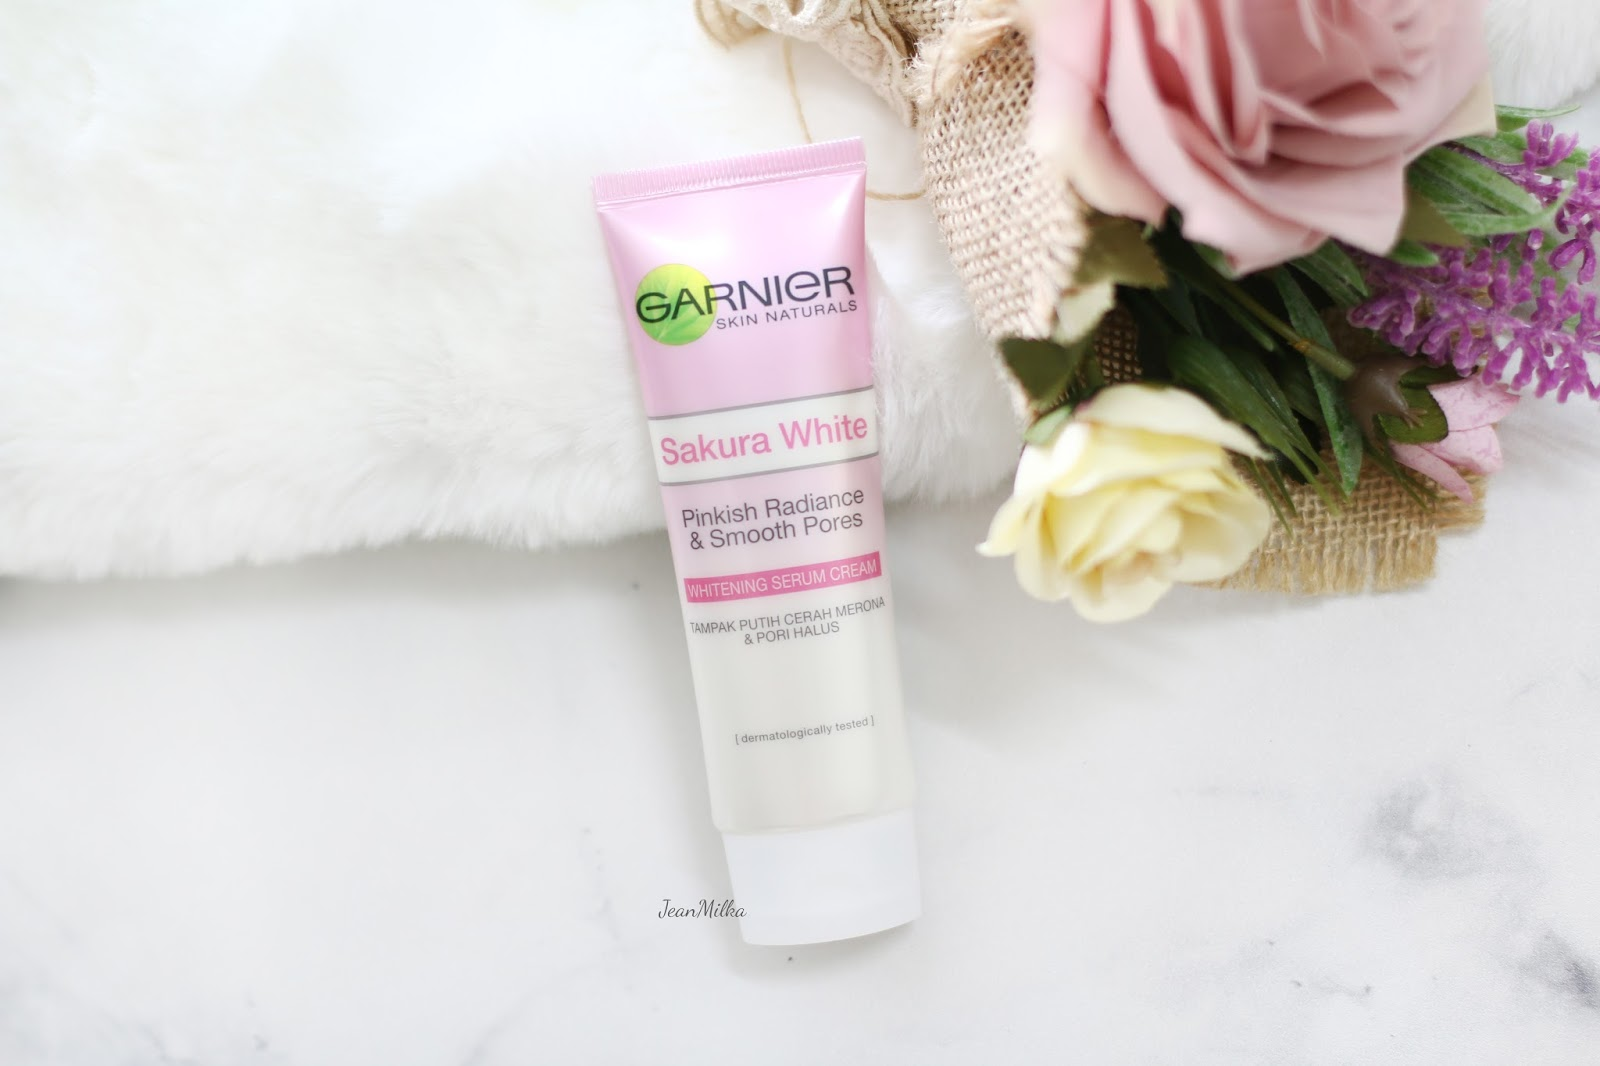 skincare, garnier, garnier sakura white, sakura white, garnier skincare, skincare indonesia, review, product review, skincare indonesia, indonesia